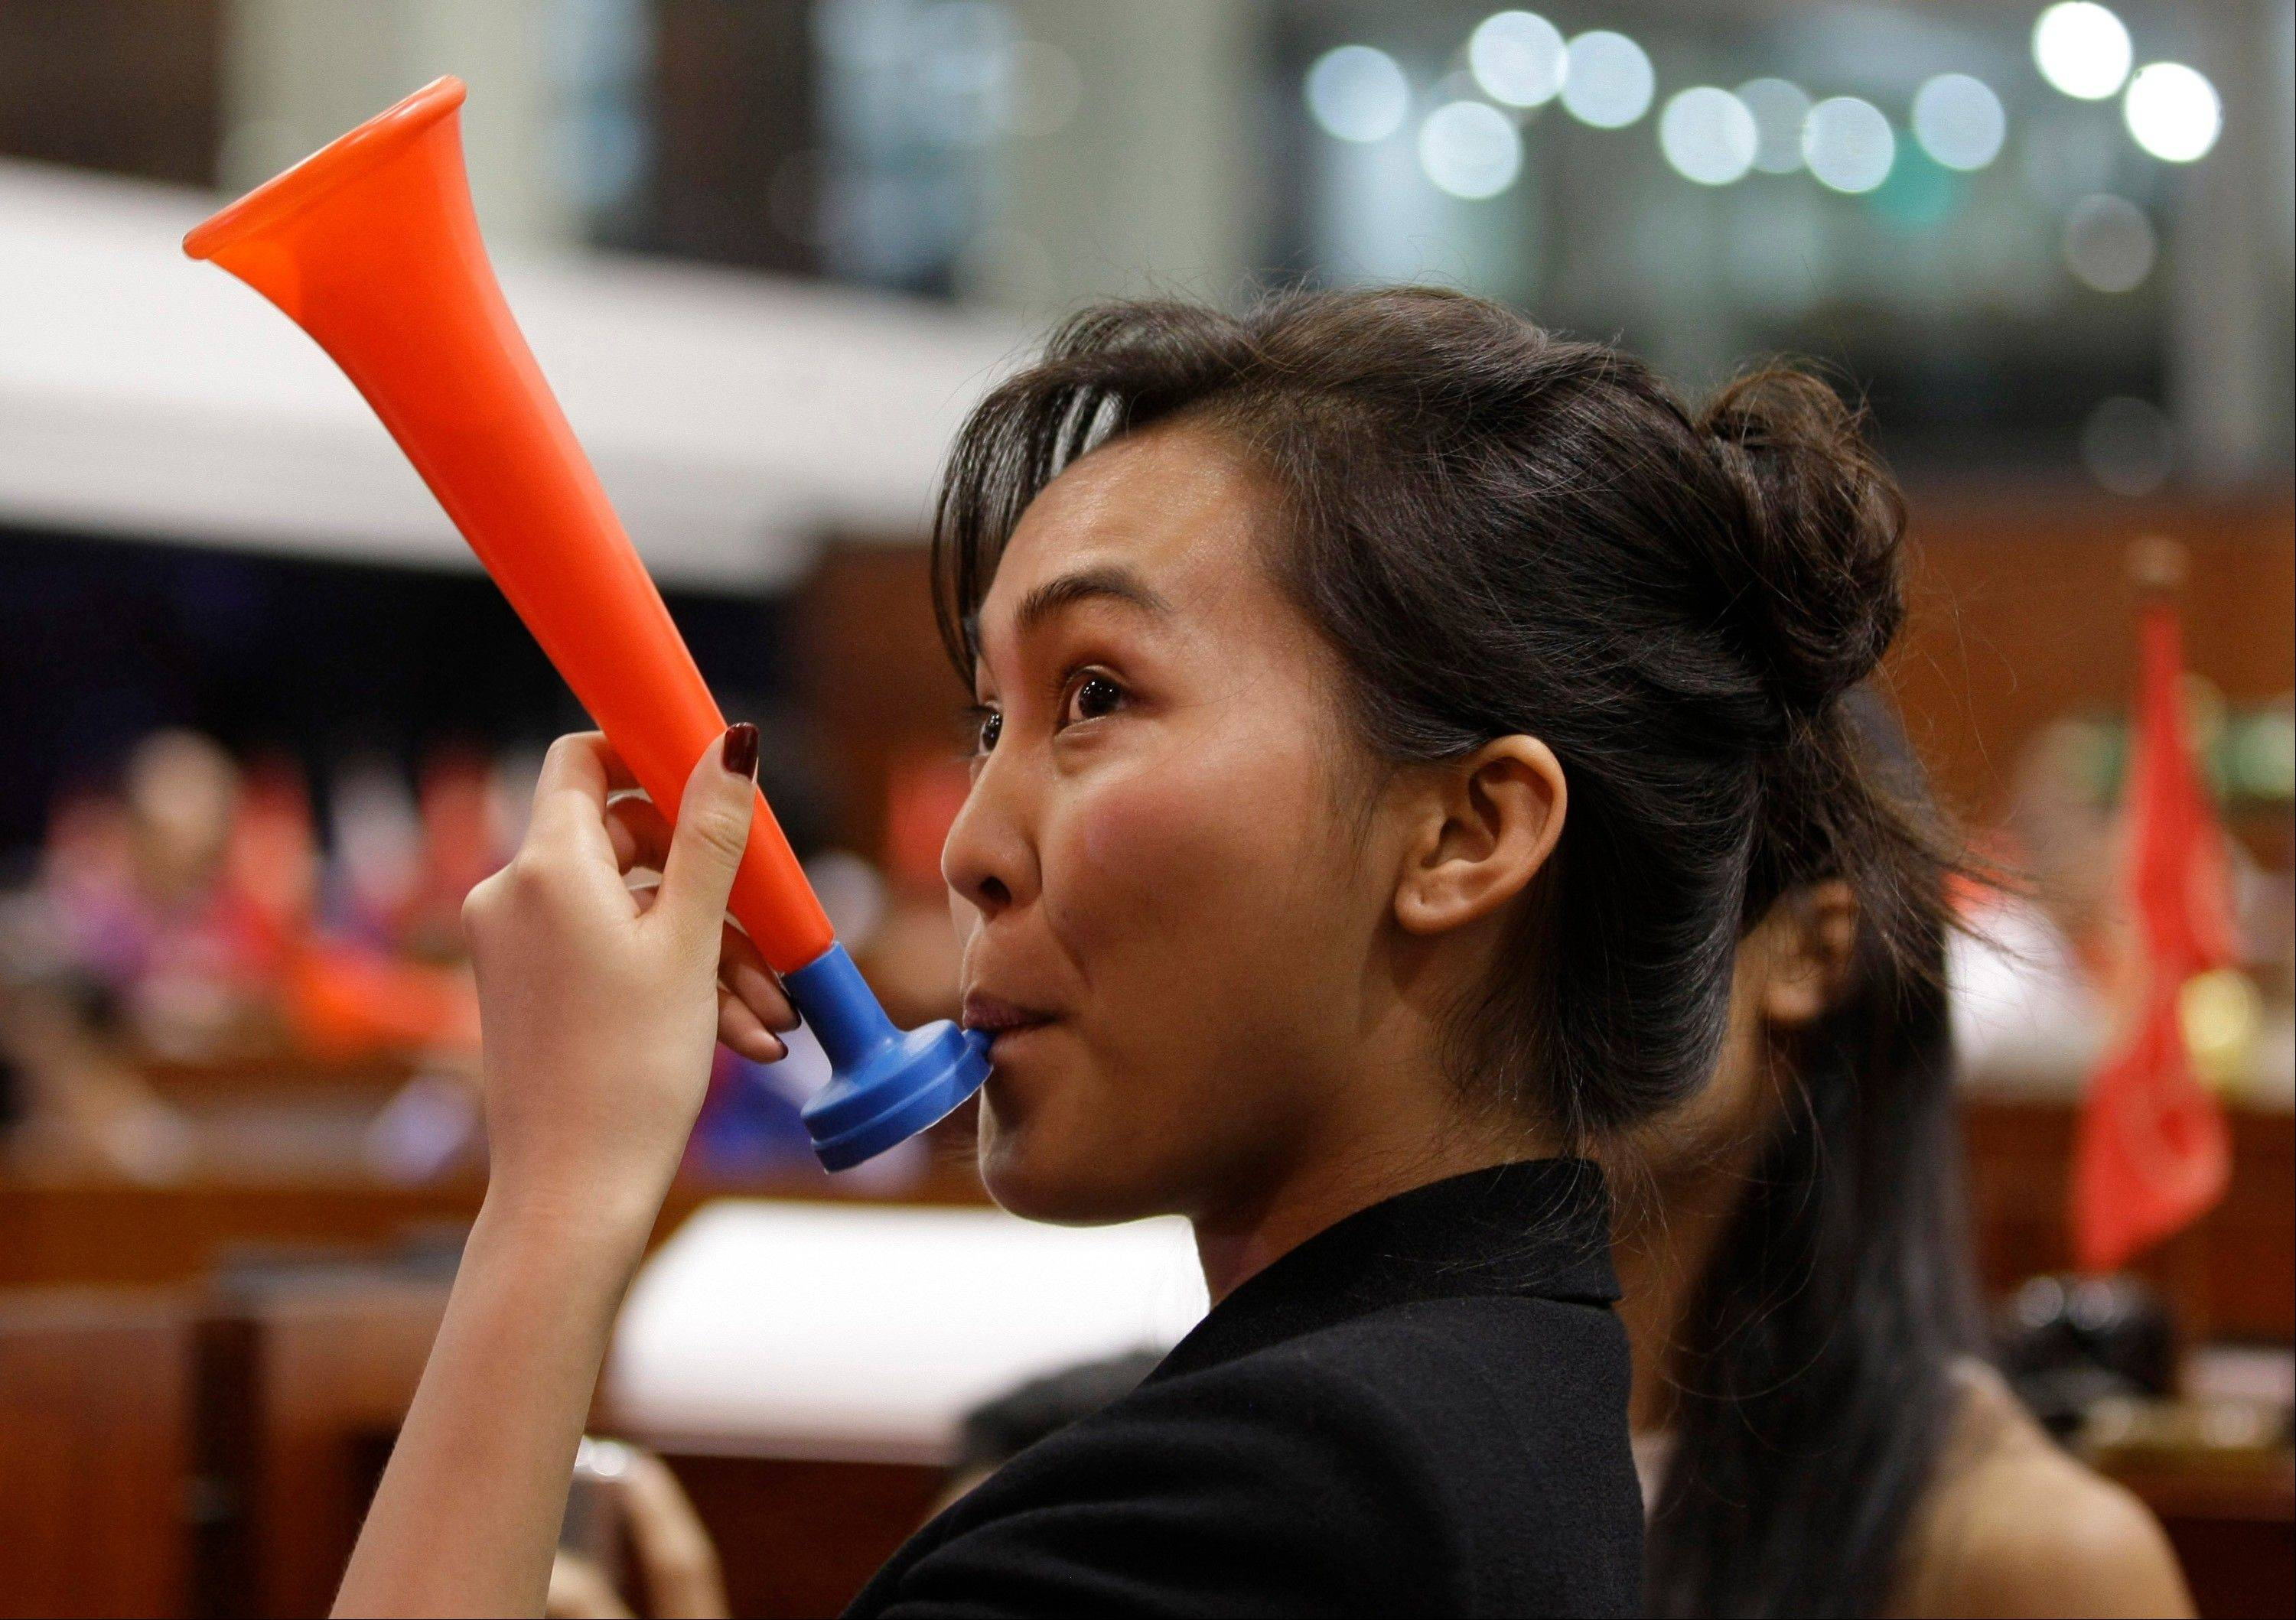 A Filipino trader blows a horn during the last day of trading this year at the Philippine Stock Exchange in the financial district of Makati, south of Manila, Philippines Friday.